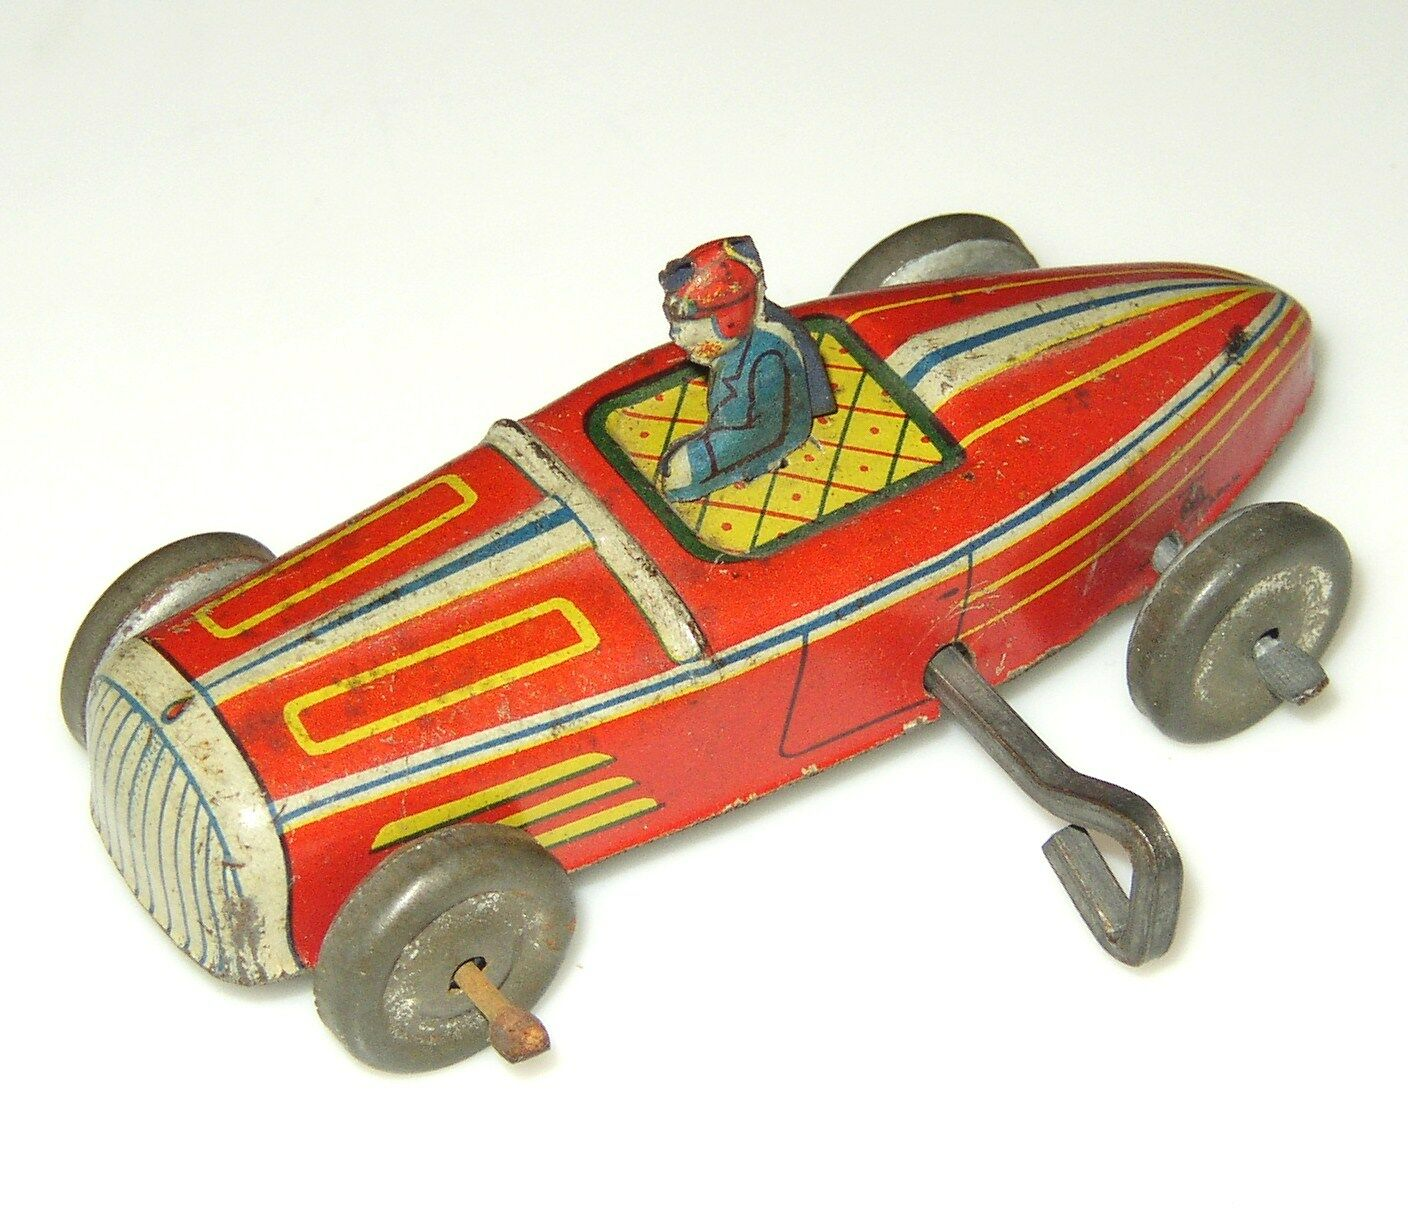 PREWAR JAPAN WIND-UP TIN LITHO RED RACER RACE CAR PINSTRIPES, DRIVER 3.75  RARE